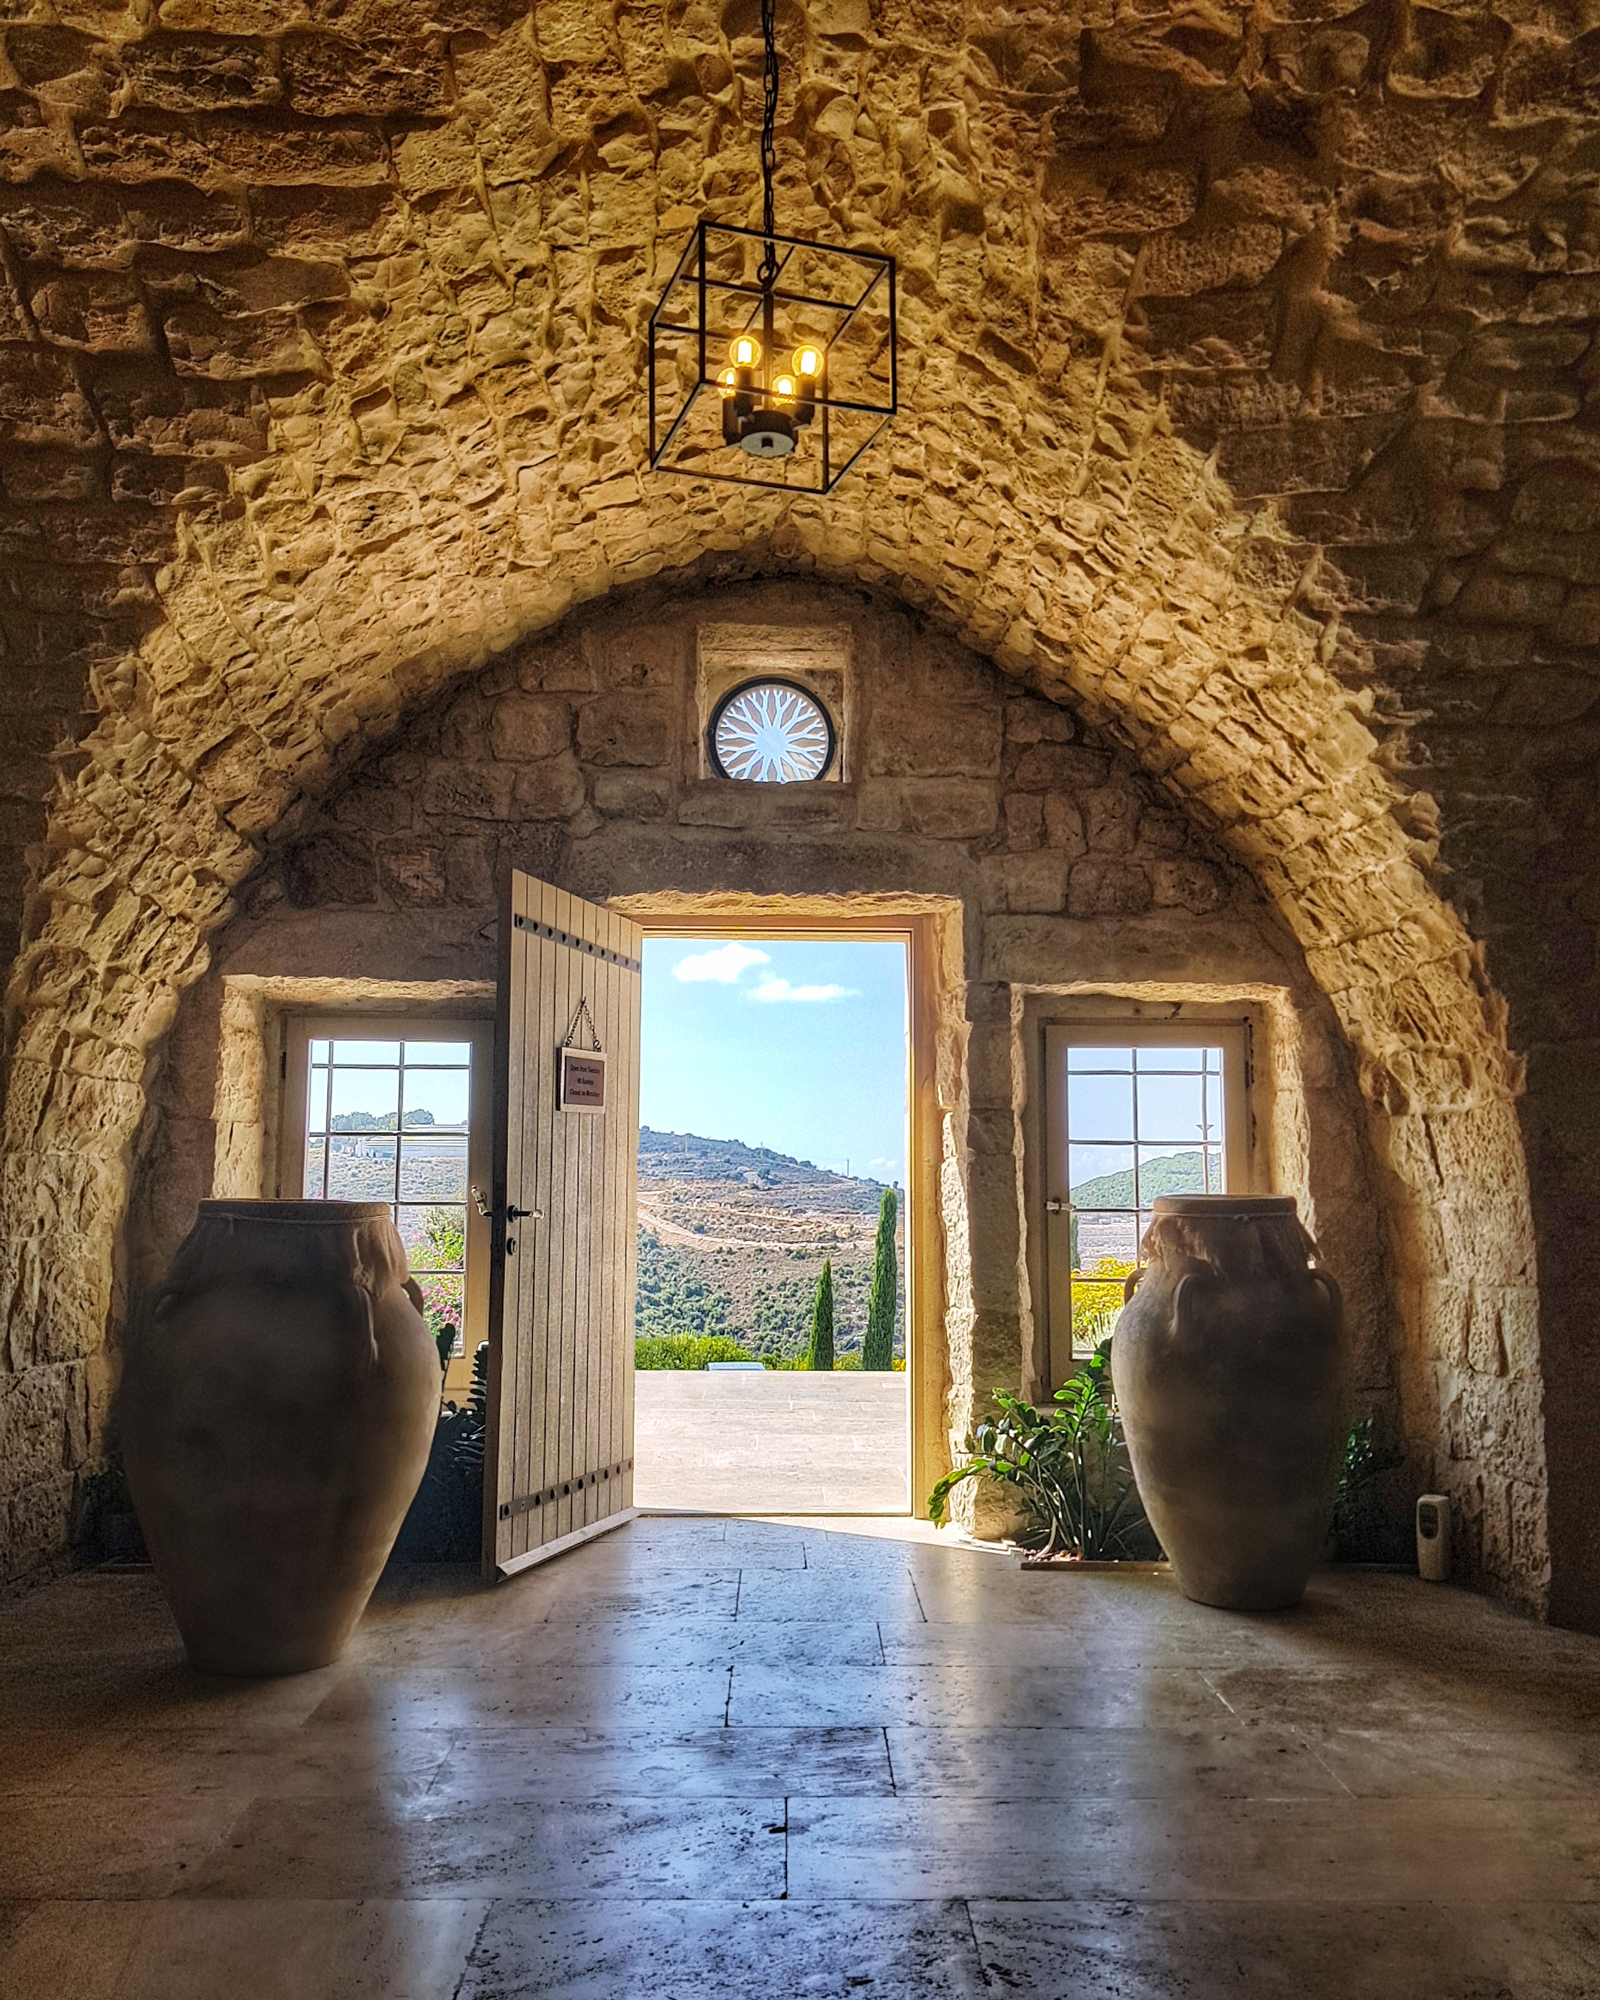 Lebanon Wine IXSIR Winery